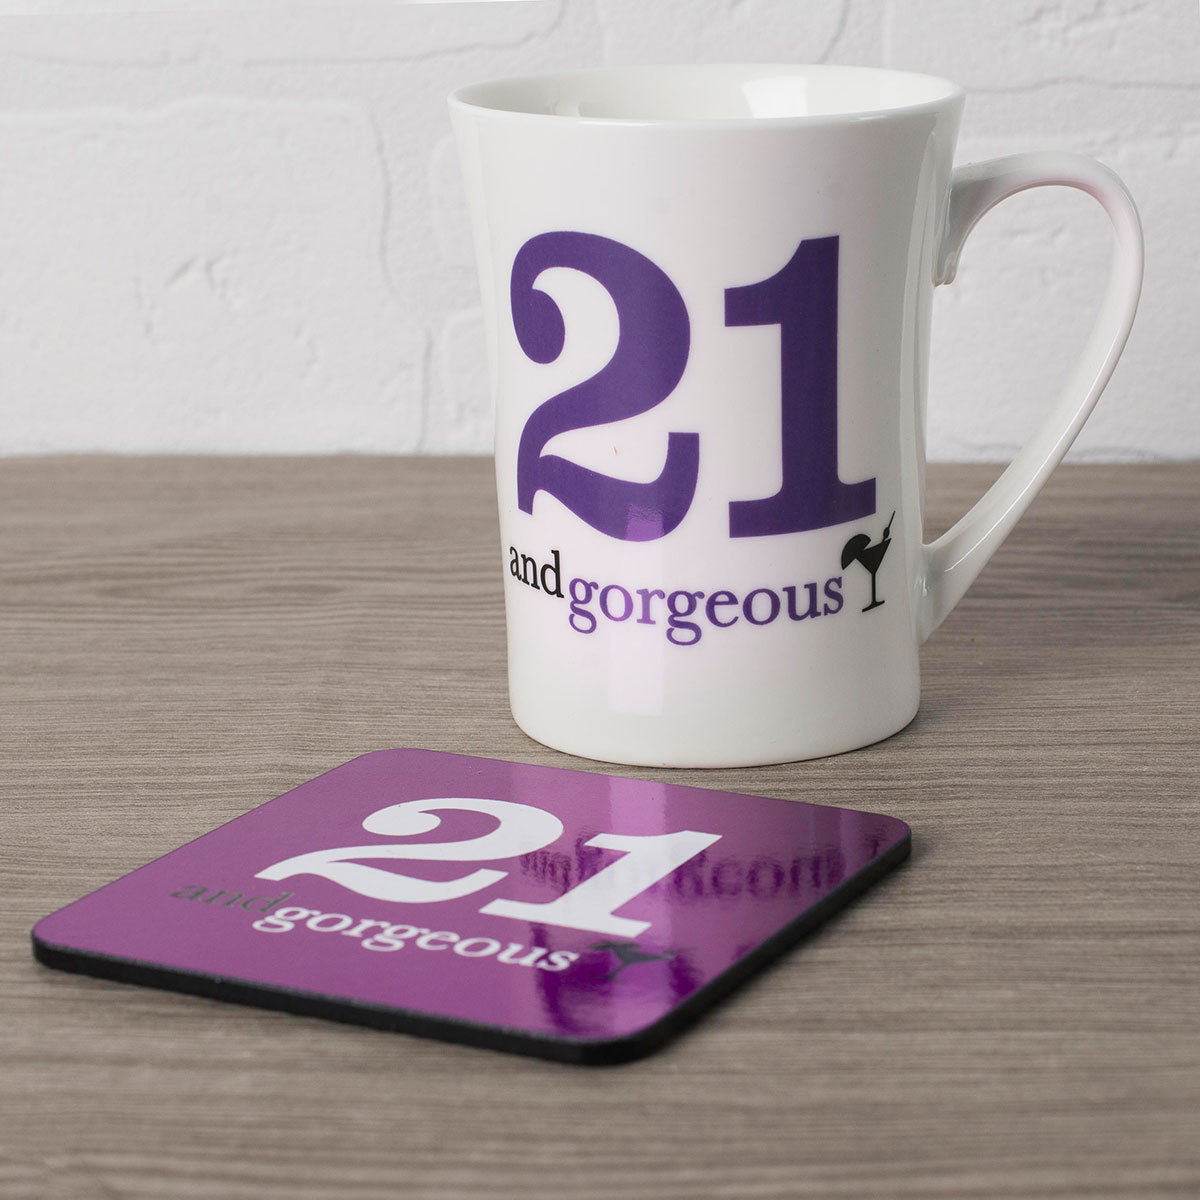 21st Birthday Mug And Coaster Set - Gorgeous - 21st gift